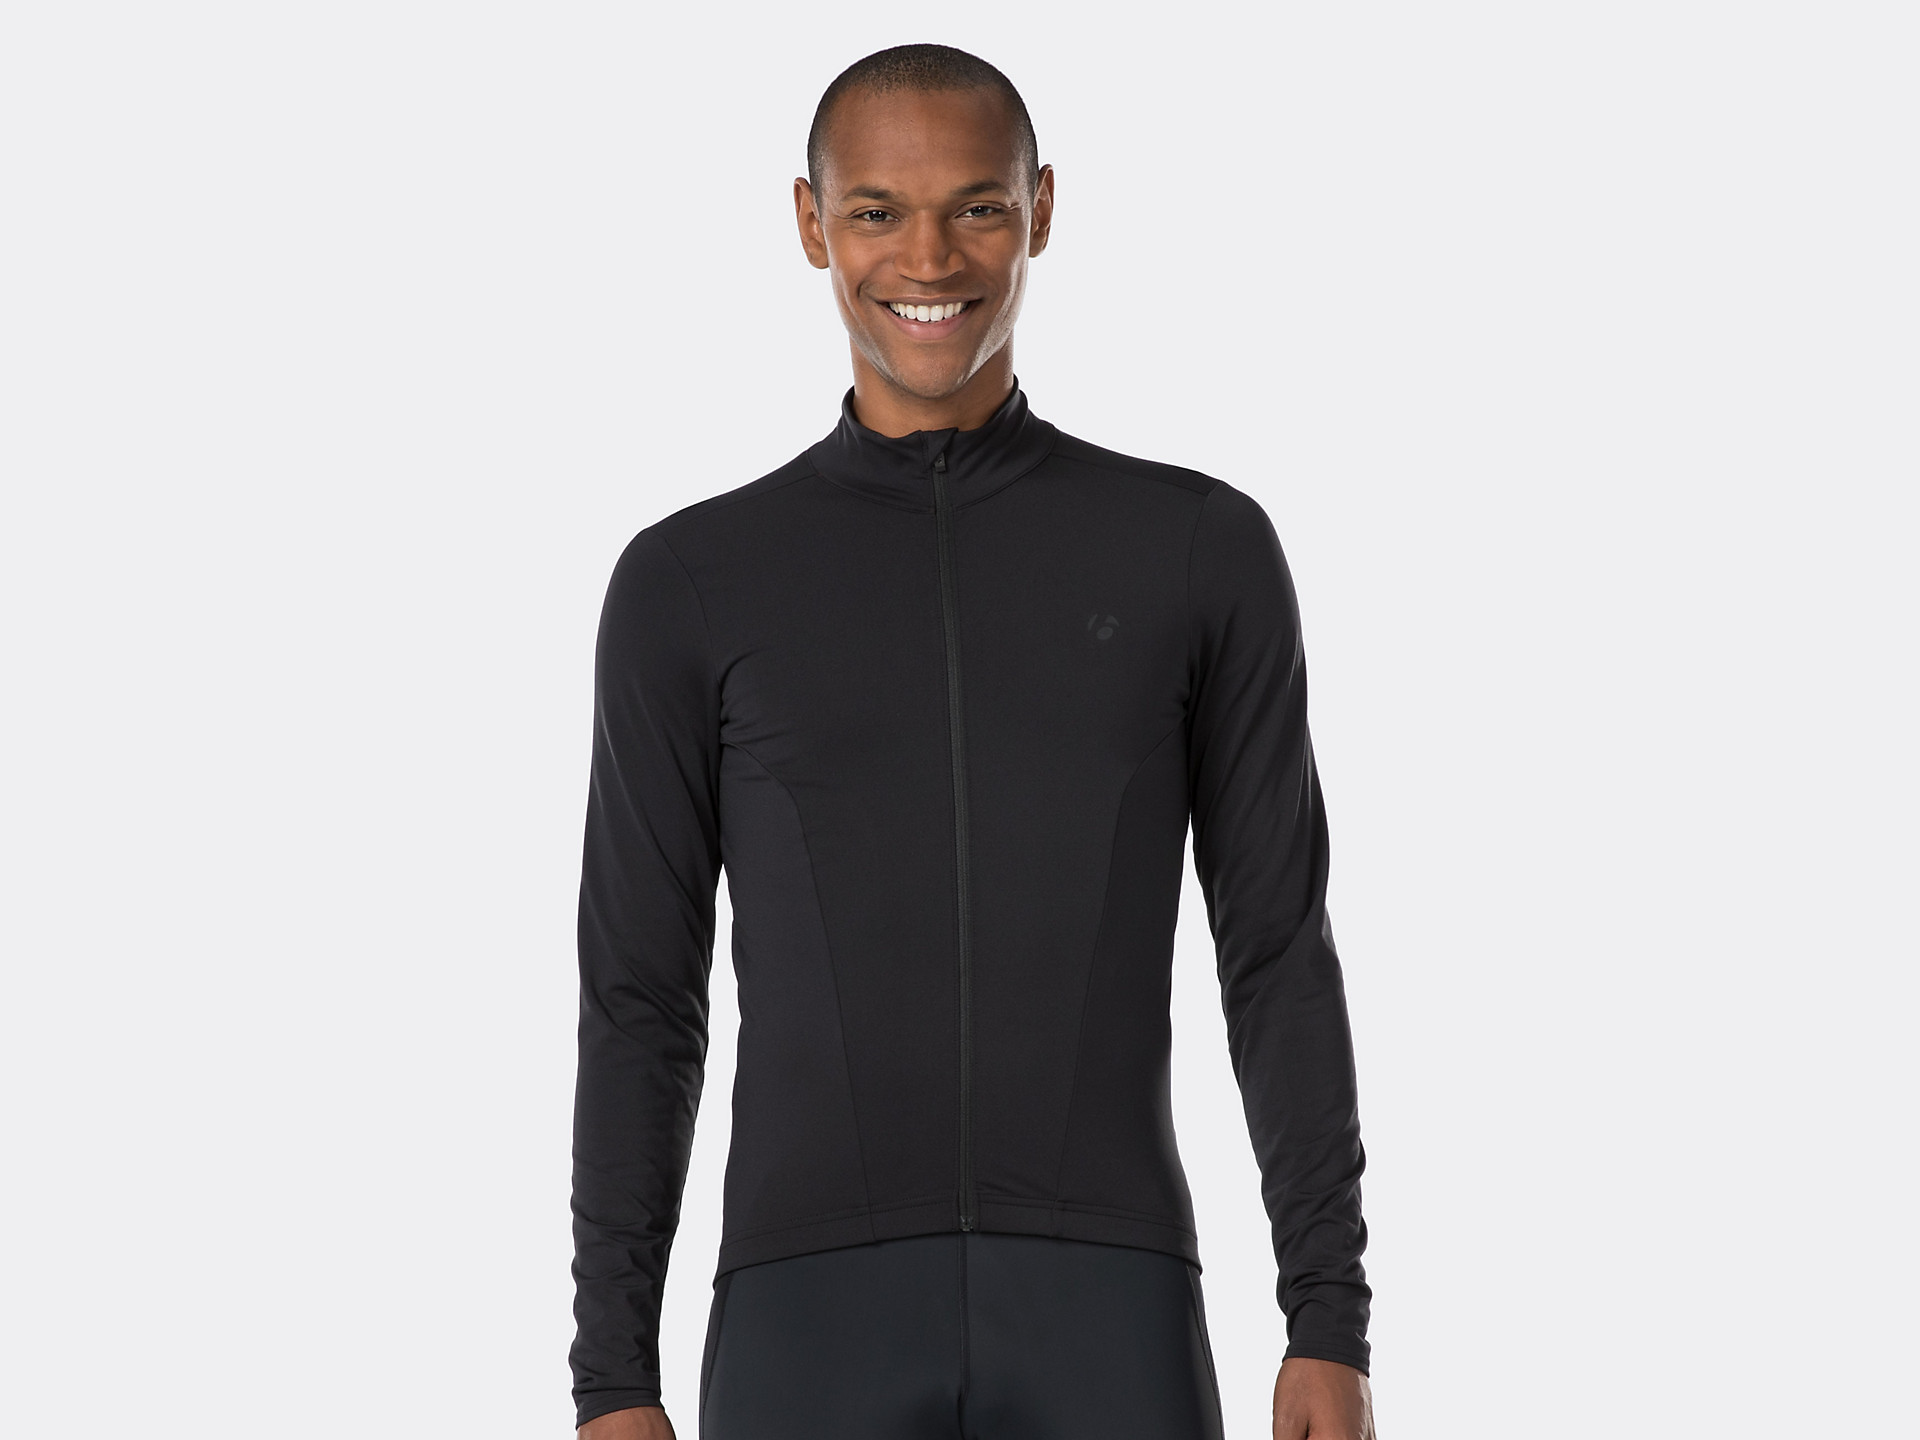 862213be9 Bontrager Velocis Thermal Long Sleeve Jersey